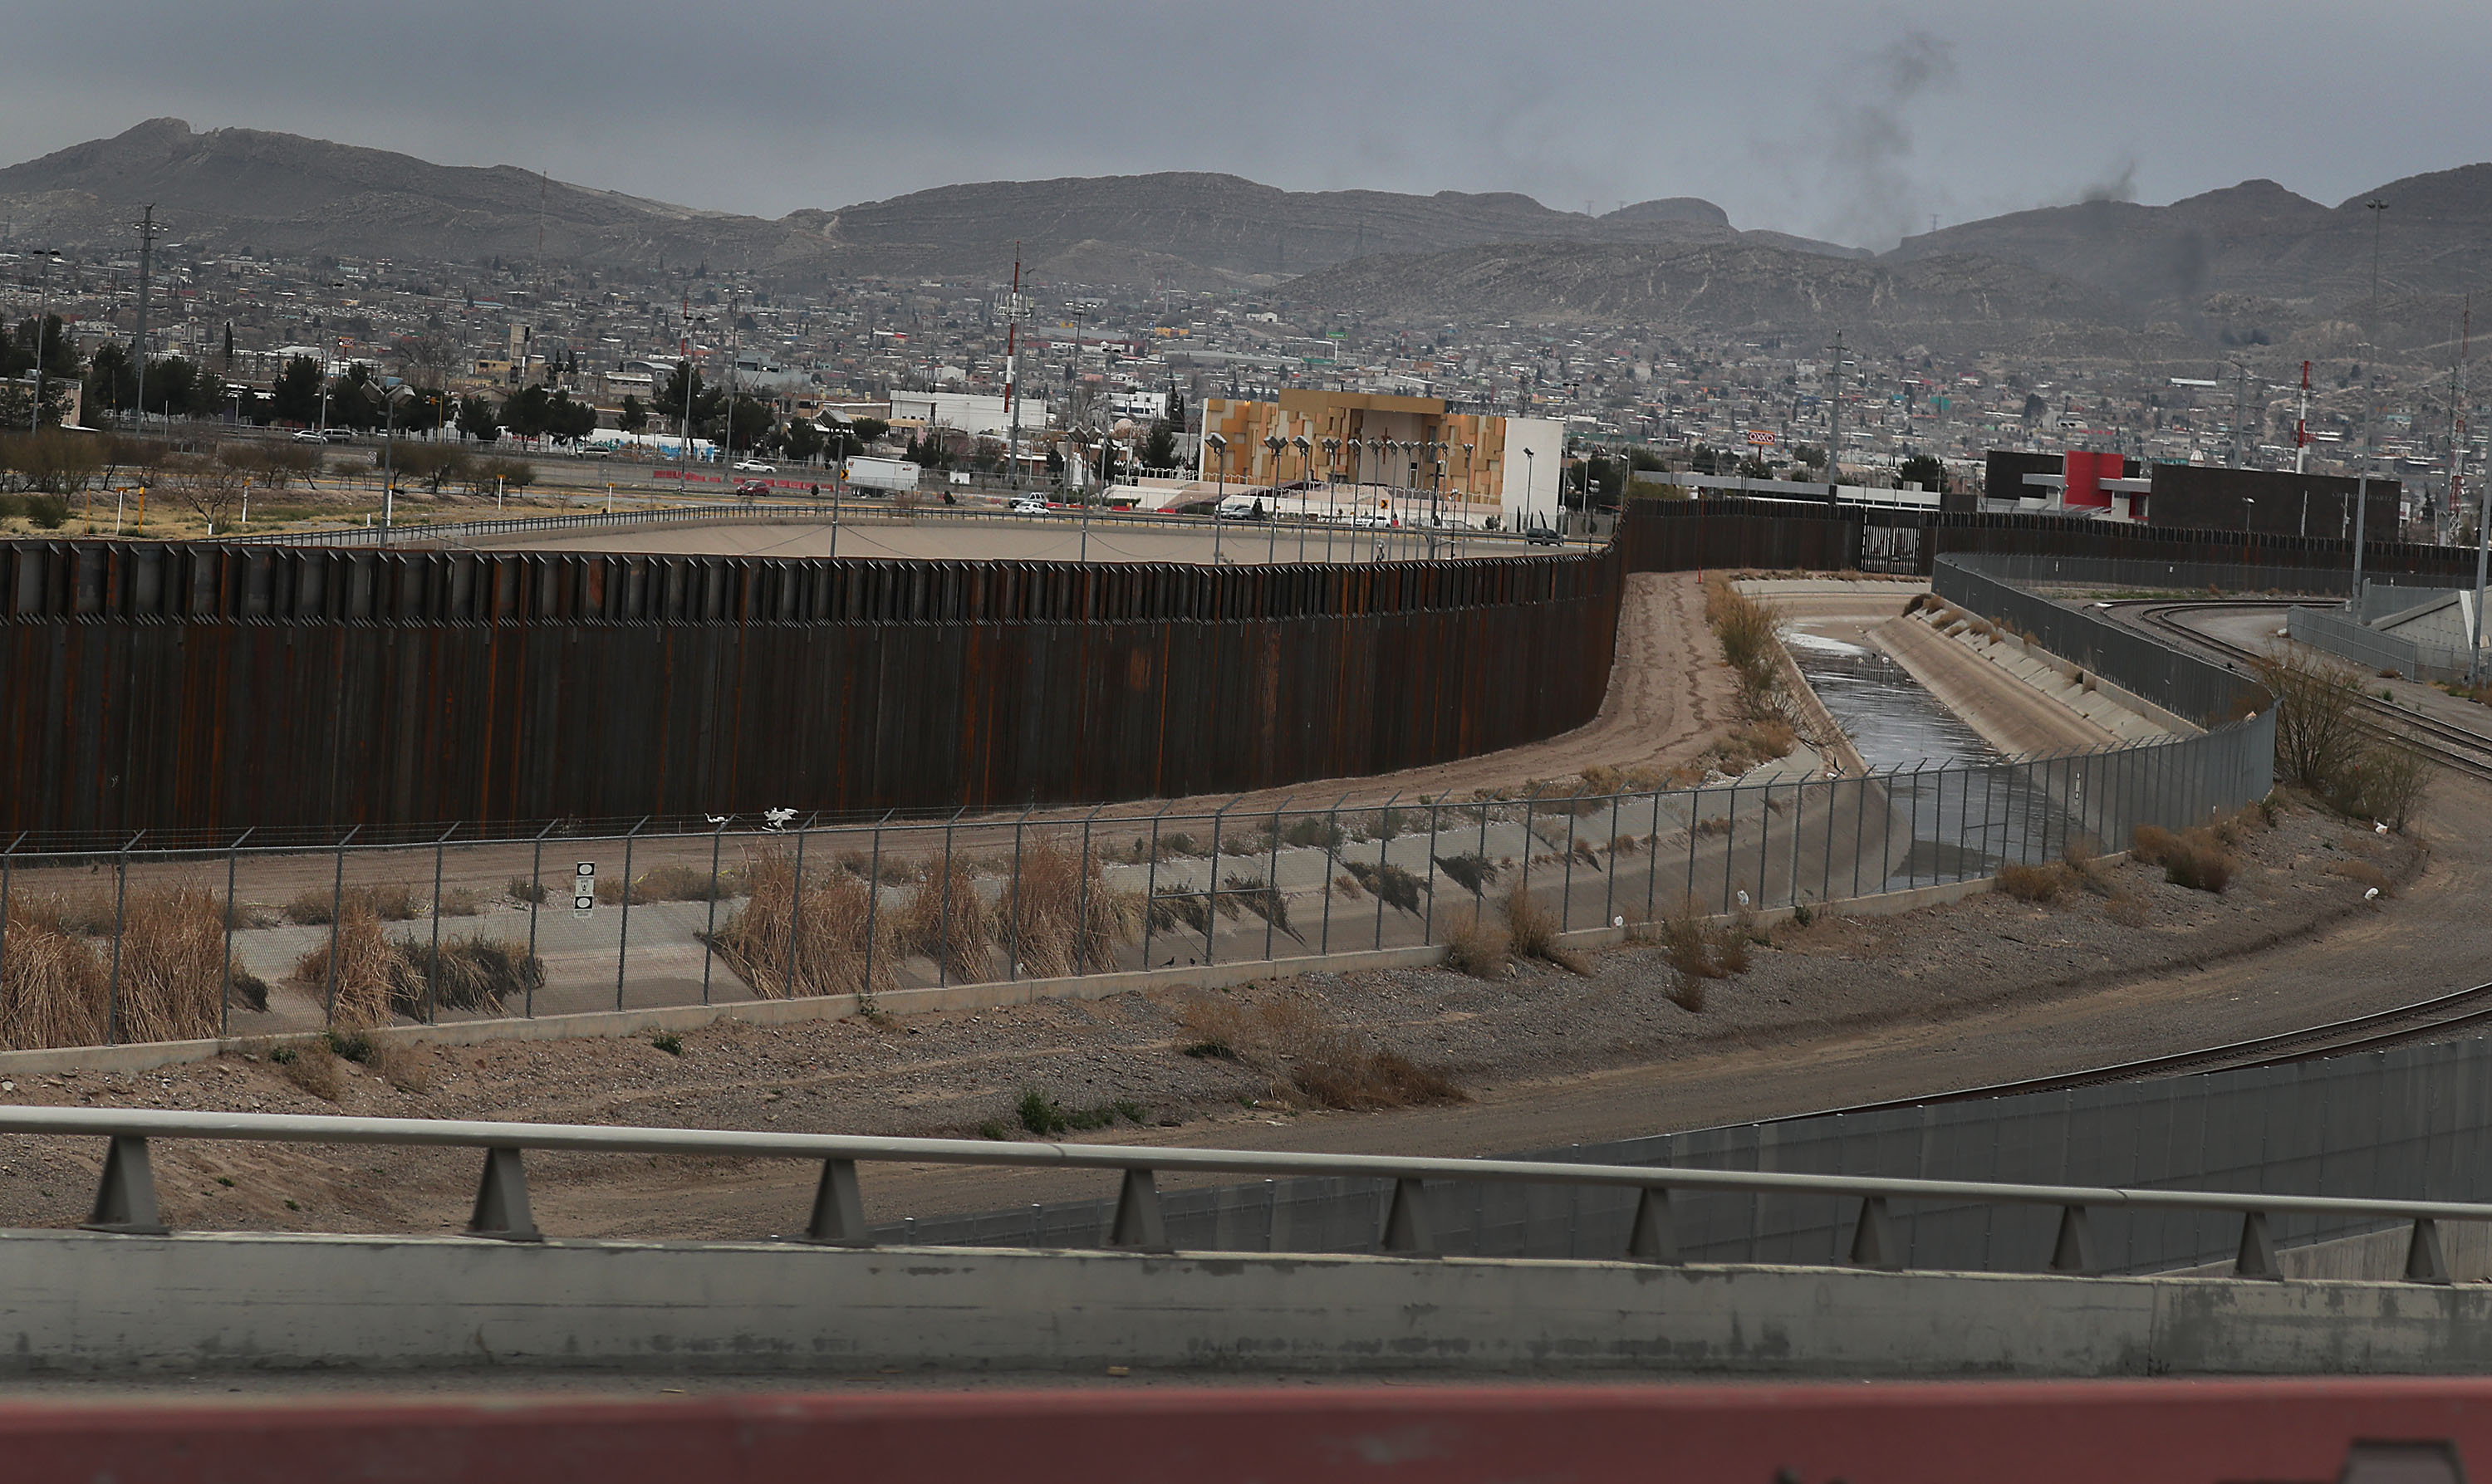 EL PASO, TEXAS - FEBRUARY 10: The U.S./ Mexican border wall is seen on February 10, 2019 in El Paso, Texas. U.S. President Donald Trump is scheduled to visit the border city as he continues to campaign for a wall to be built along the border and the Democrats in Congress are asking for other border security measures. (Photo by Joe Raedle/Getty Images)